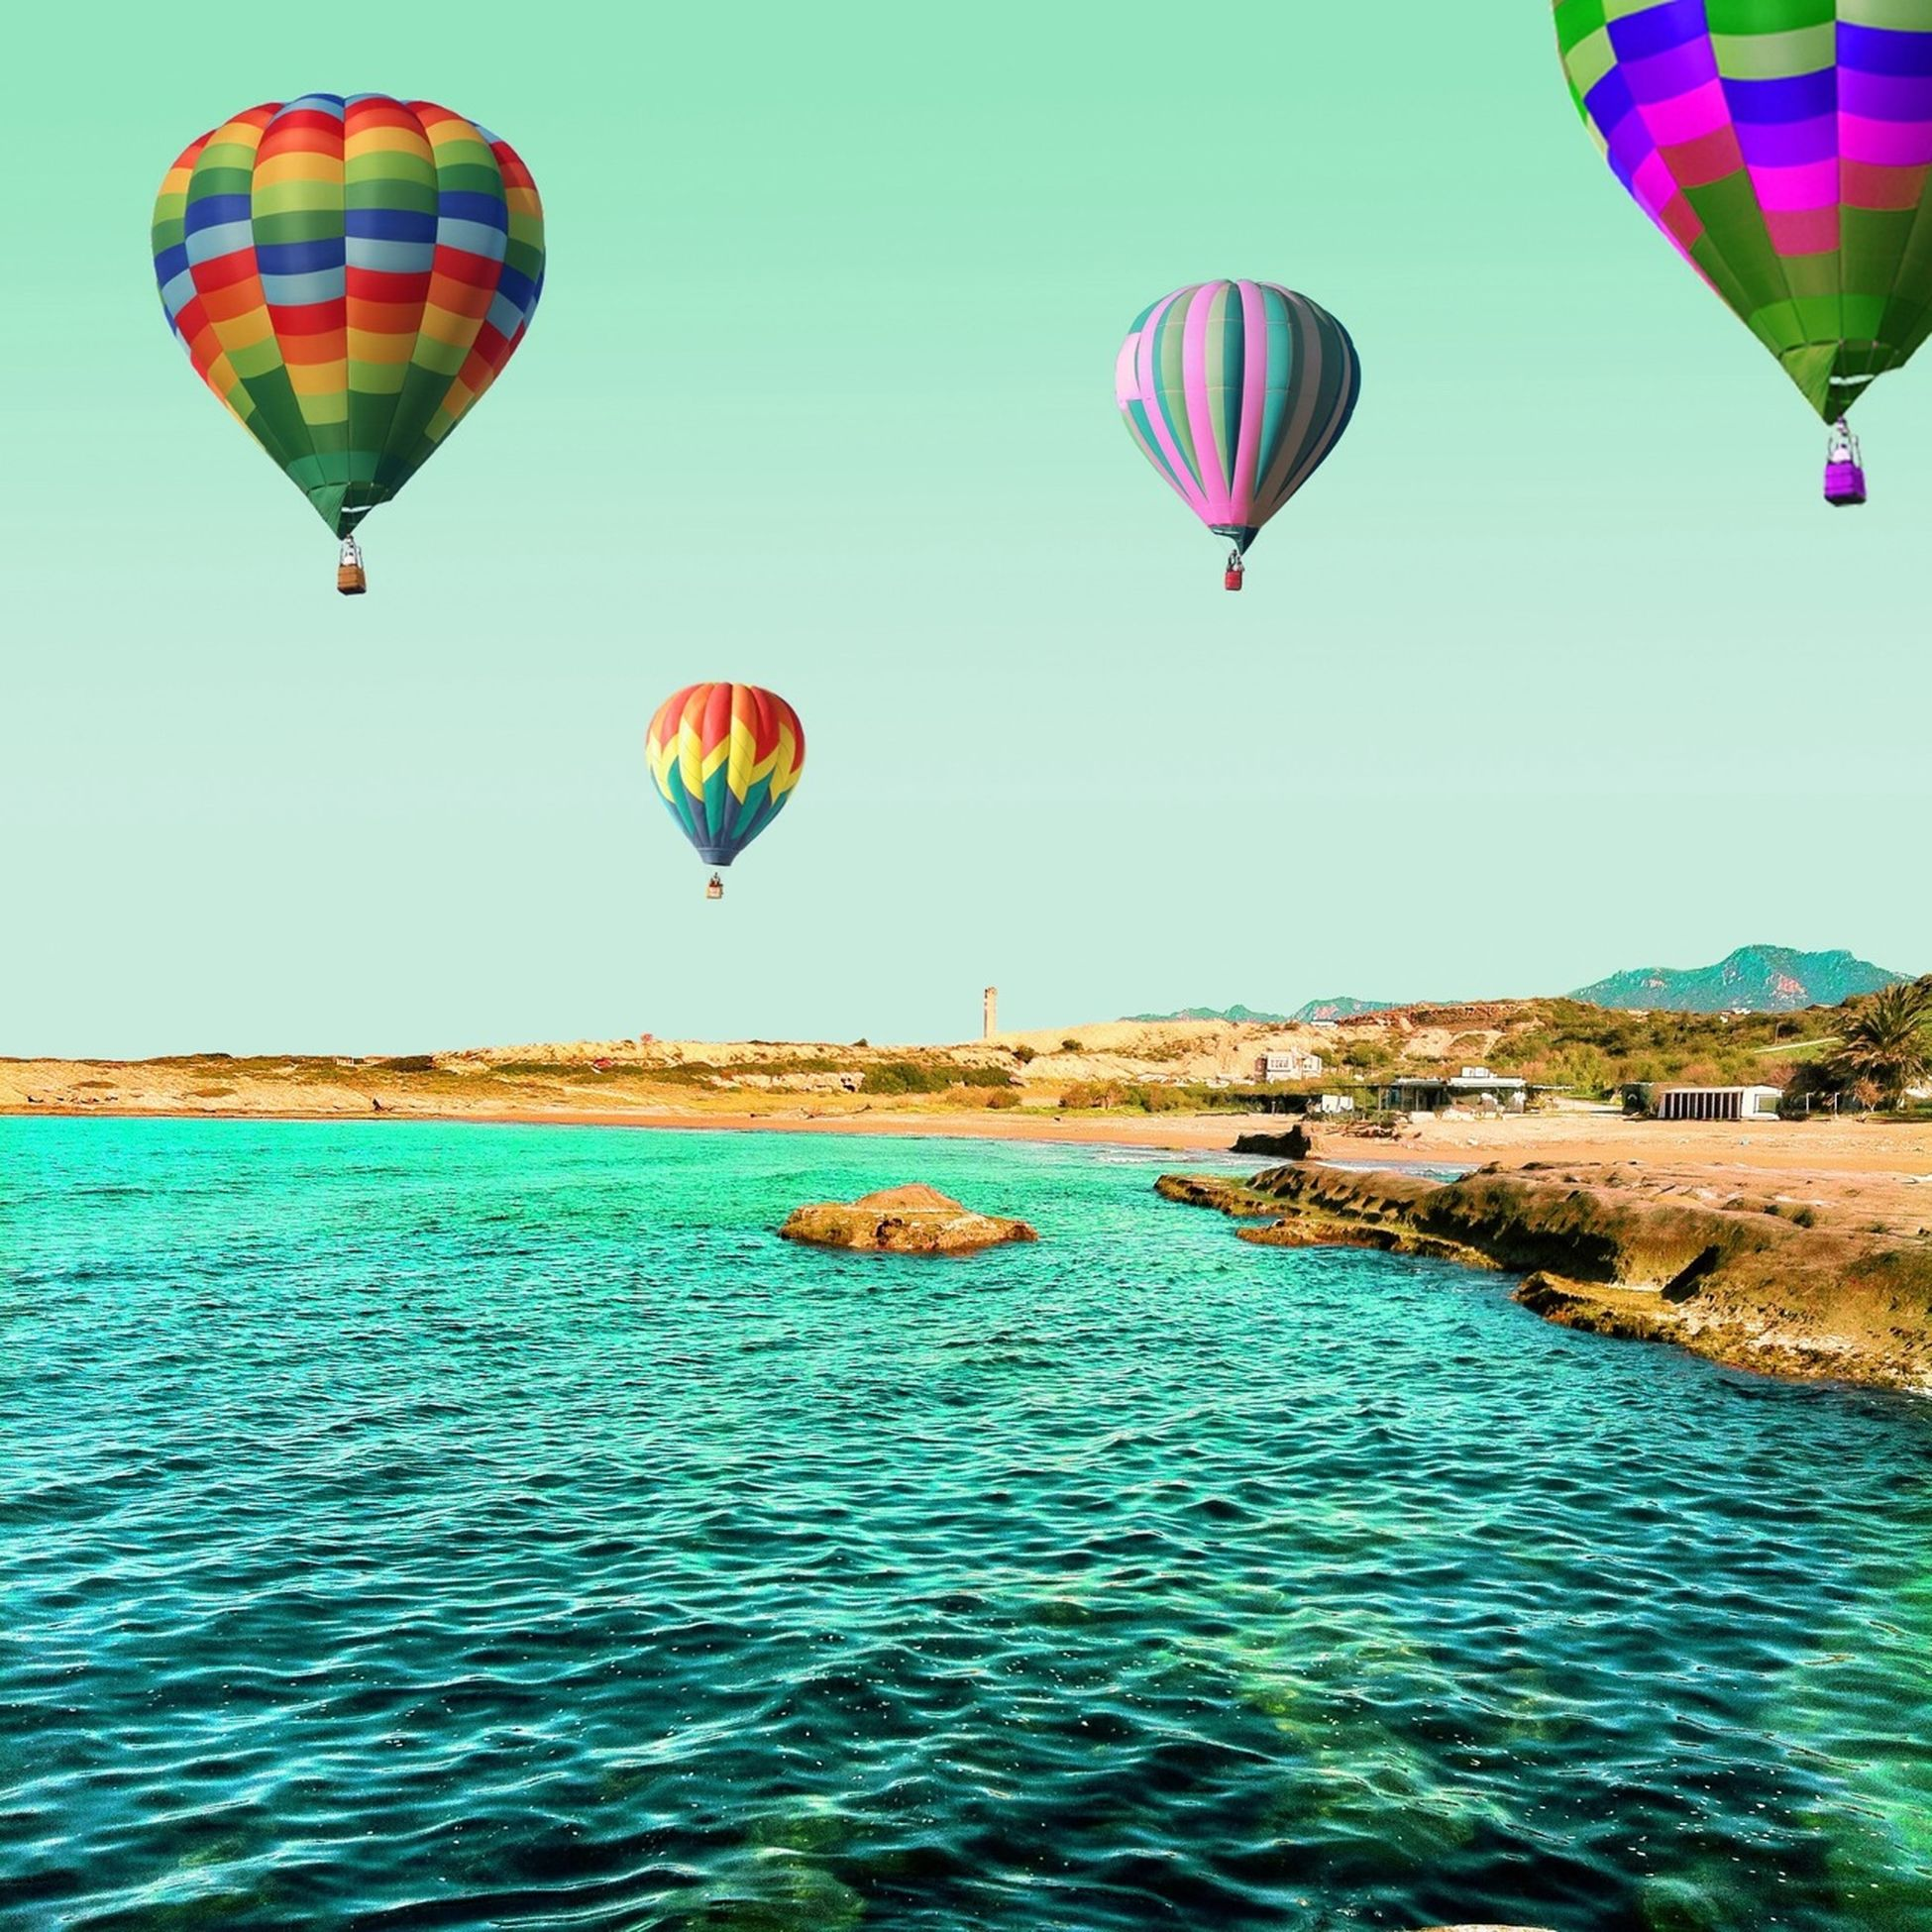 hot air balloon, mid-air, balloon, outdoors, multi colored, lantern, enjoyment, leisure activity, large group of people, fun, vacations, blue, beach, togetherness, flying, recreational pursuit, adventure, traveling, summer, holiday